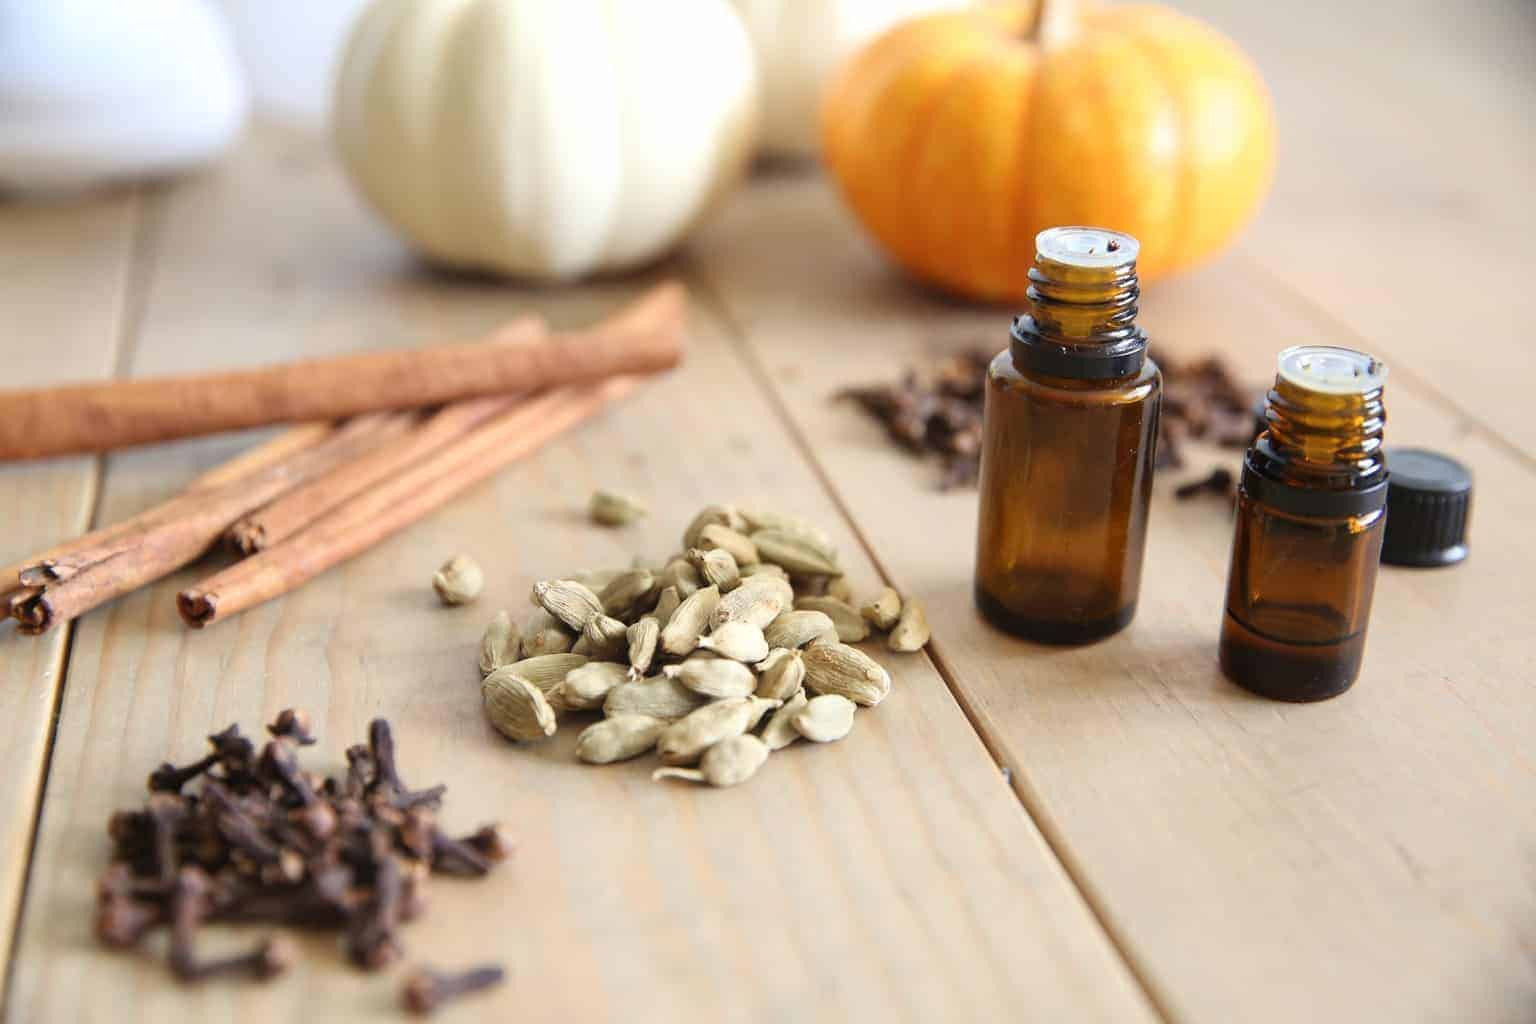 fall cinnamon and clove essential oils with dried spices